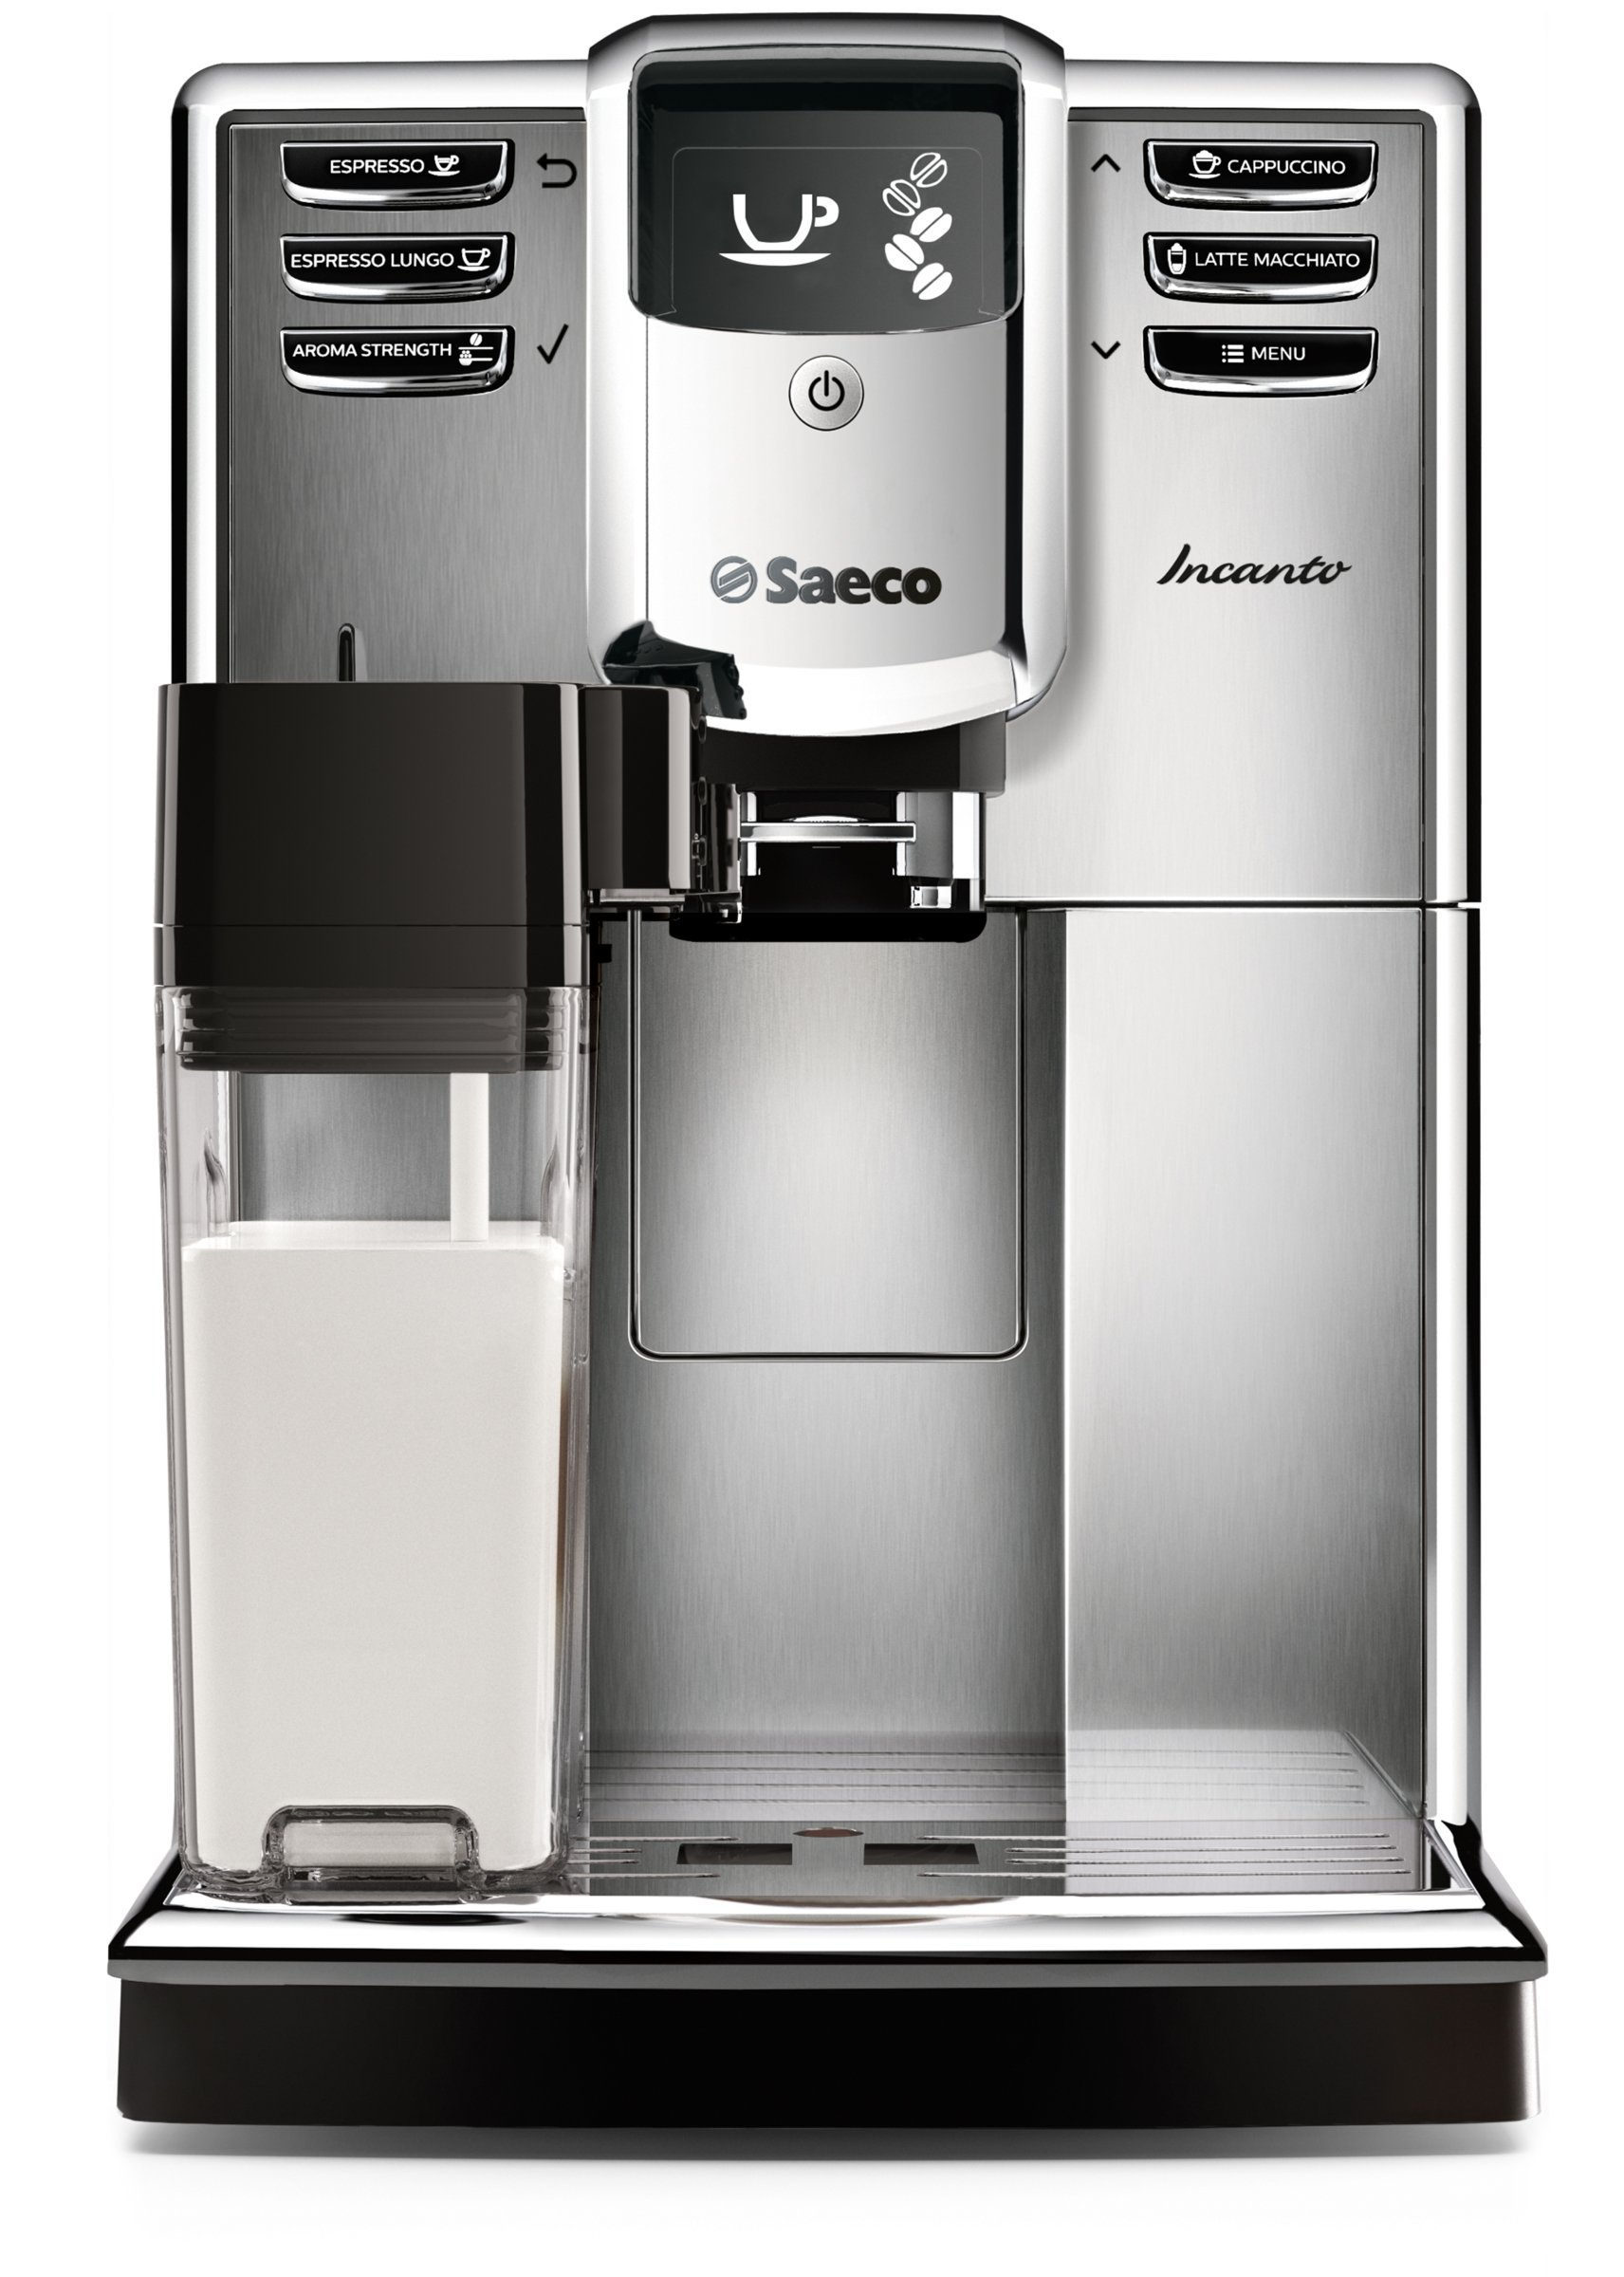 Saeco HD8917/47 Incanto Carafe Super Automatic Espresso Machine, Stainless Steel by Saeco